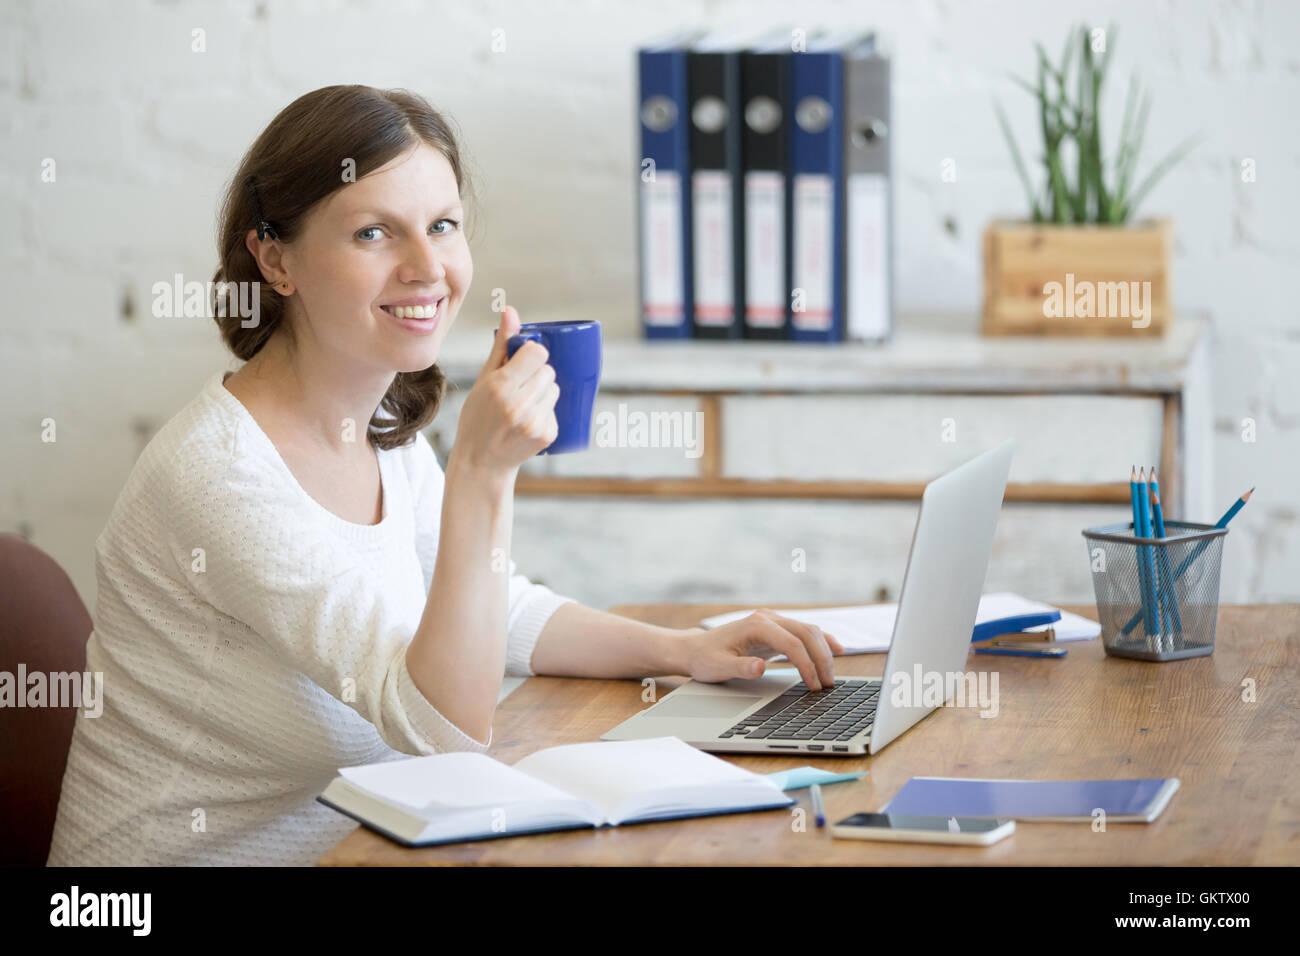 Portrait of young business woman drinking coffee and using laptop in home office interior. Happy casual office person - Stock Image